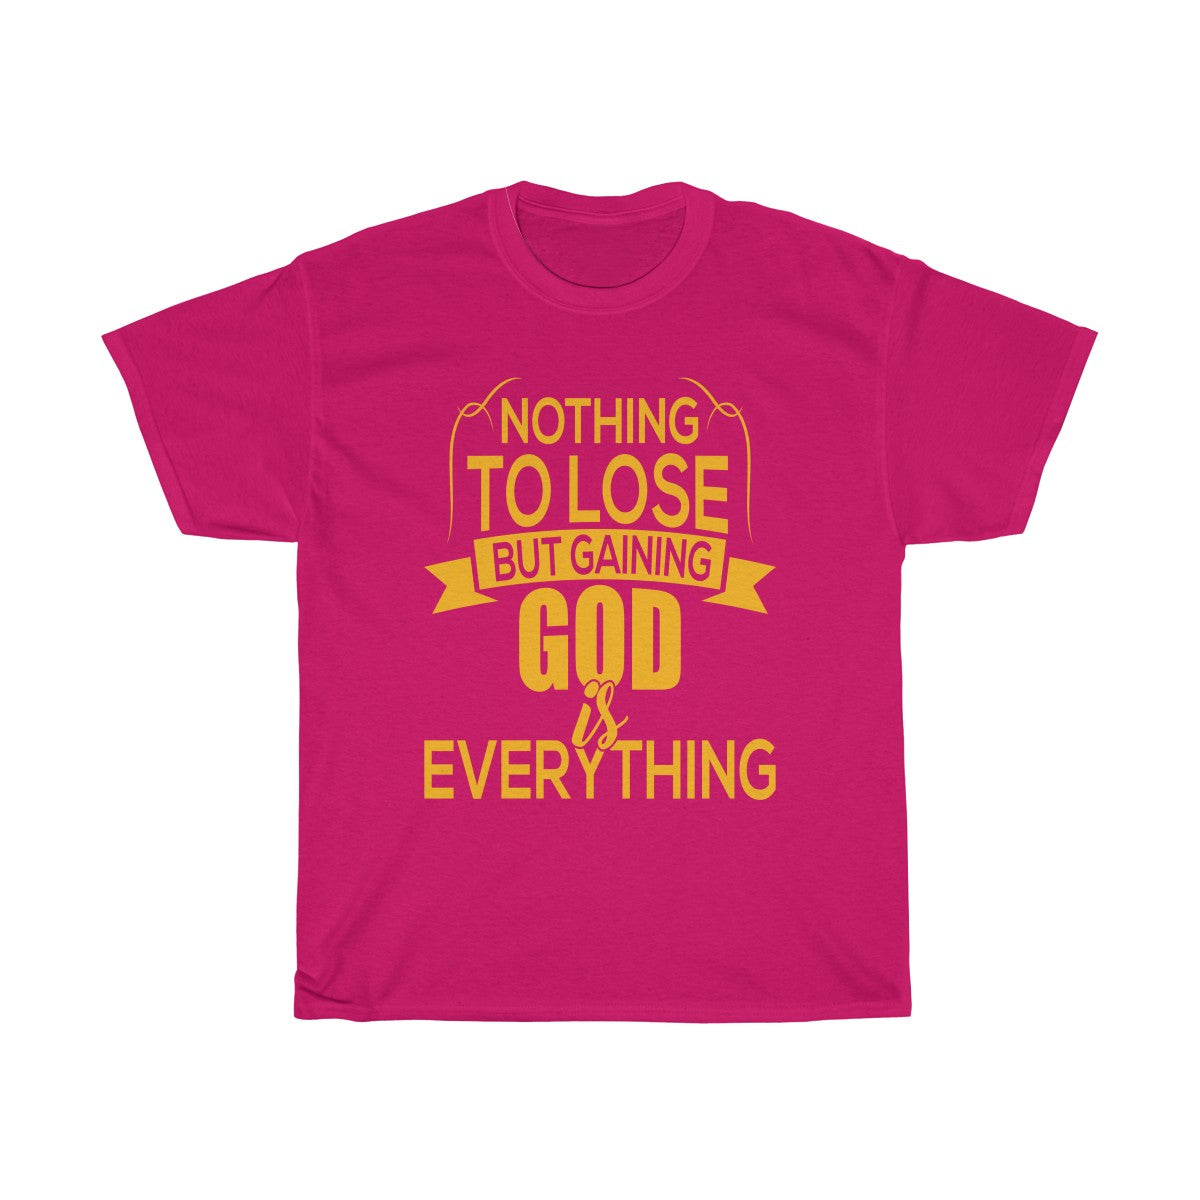 Gaining God Is Everything T-Shirt